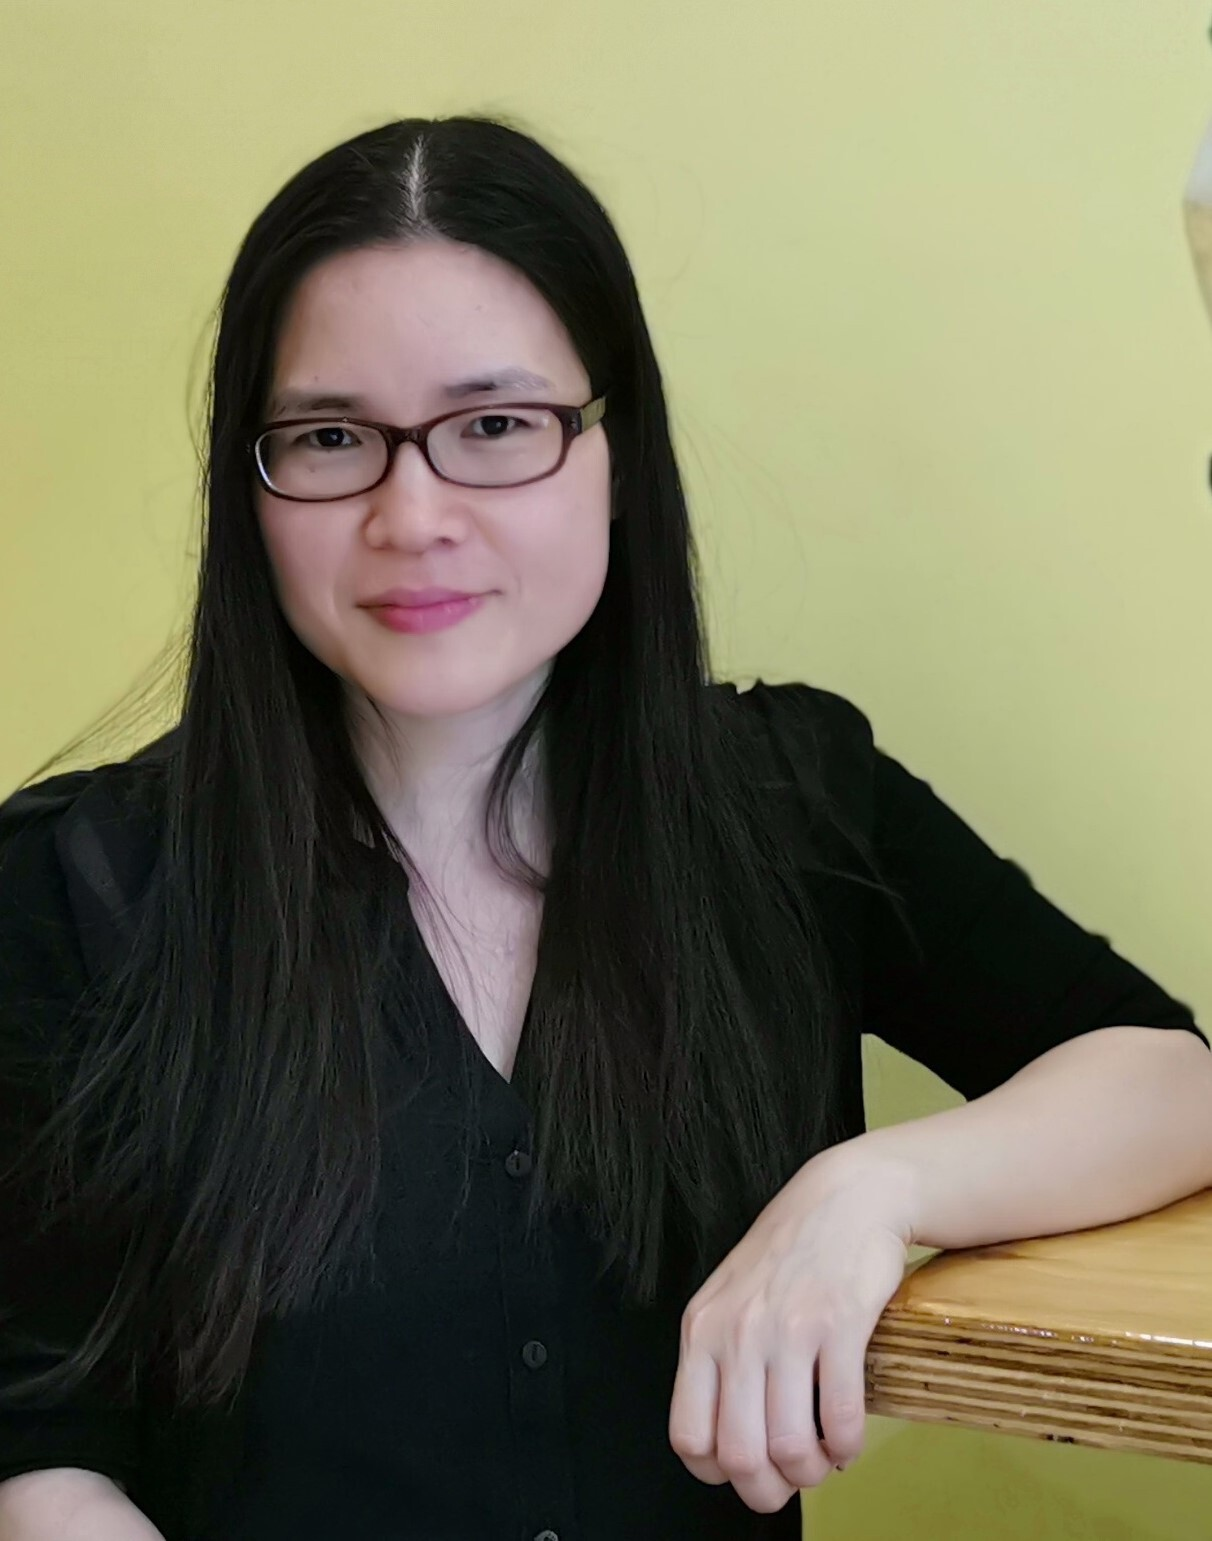 Profile picture of Lan Anh Hoang